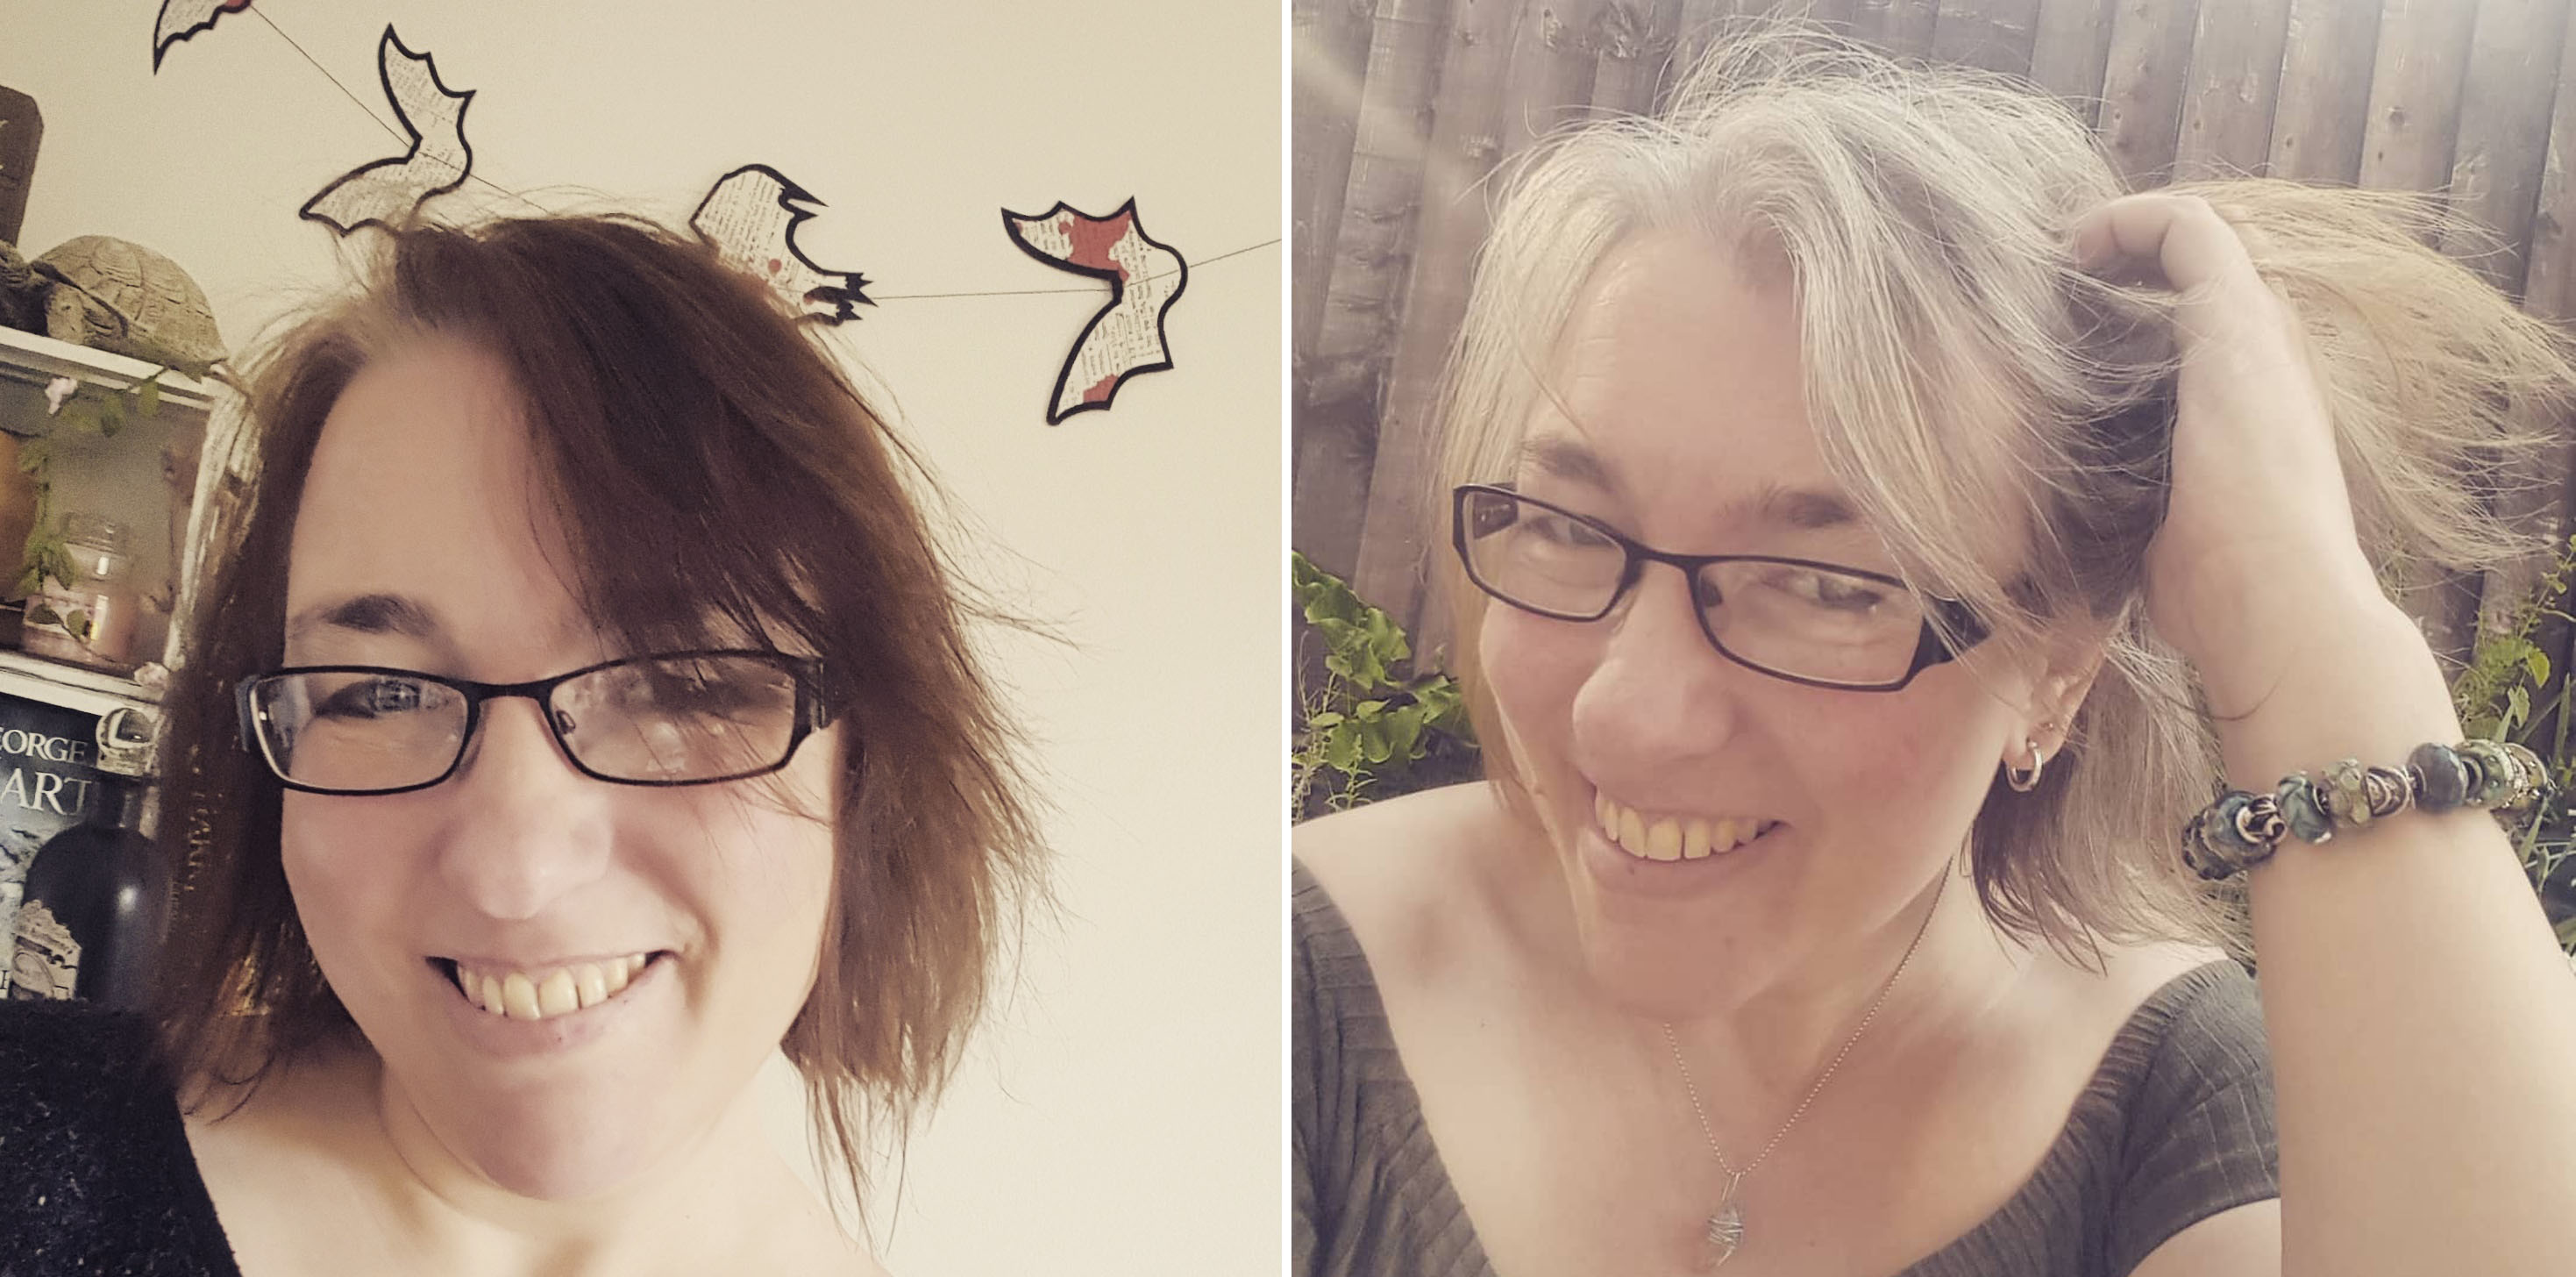 age 45 - 47 from this to this - the process of going grey - The Last Krystallos